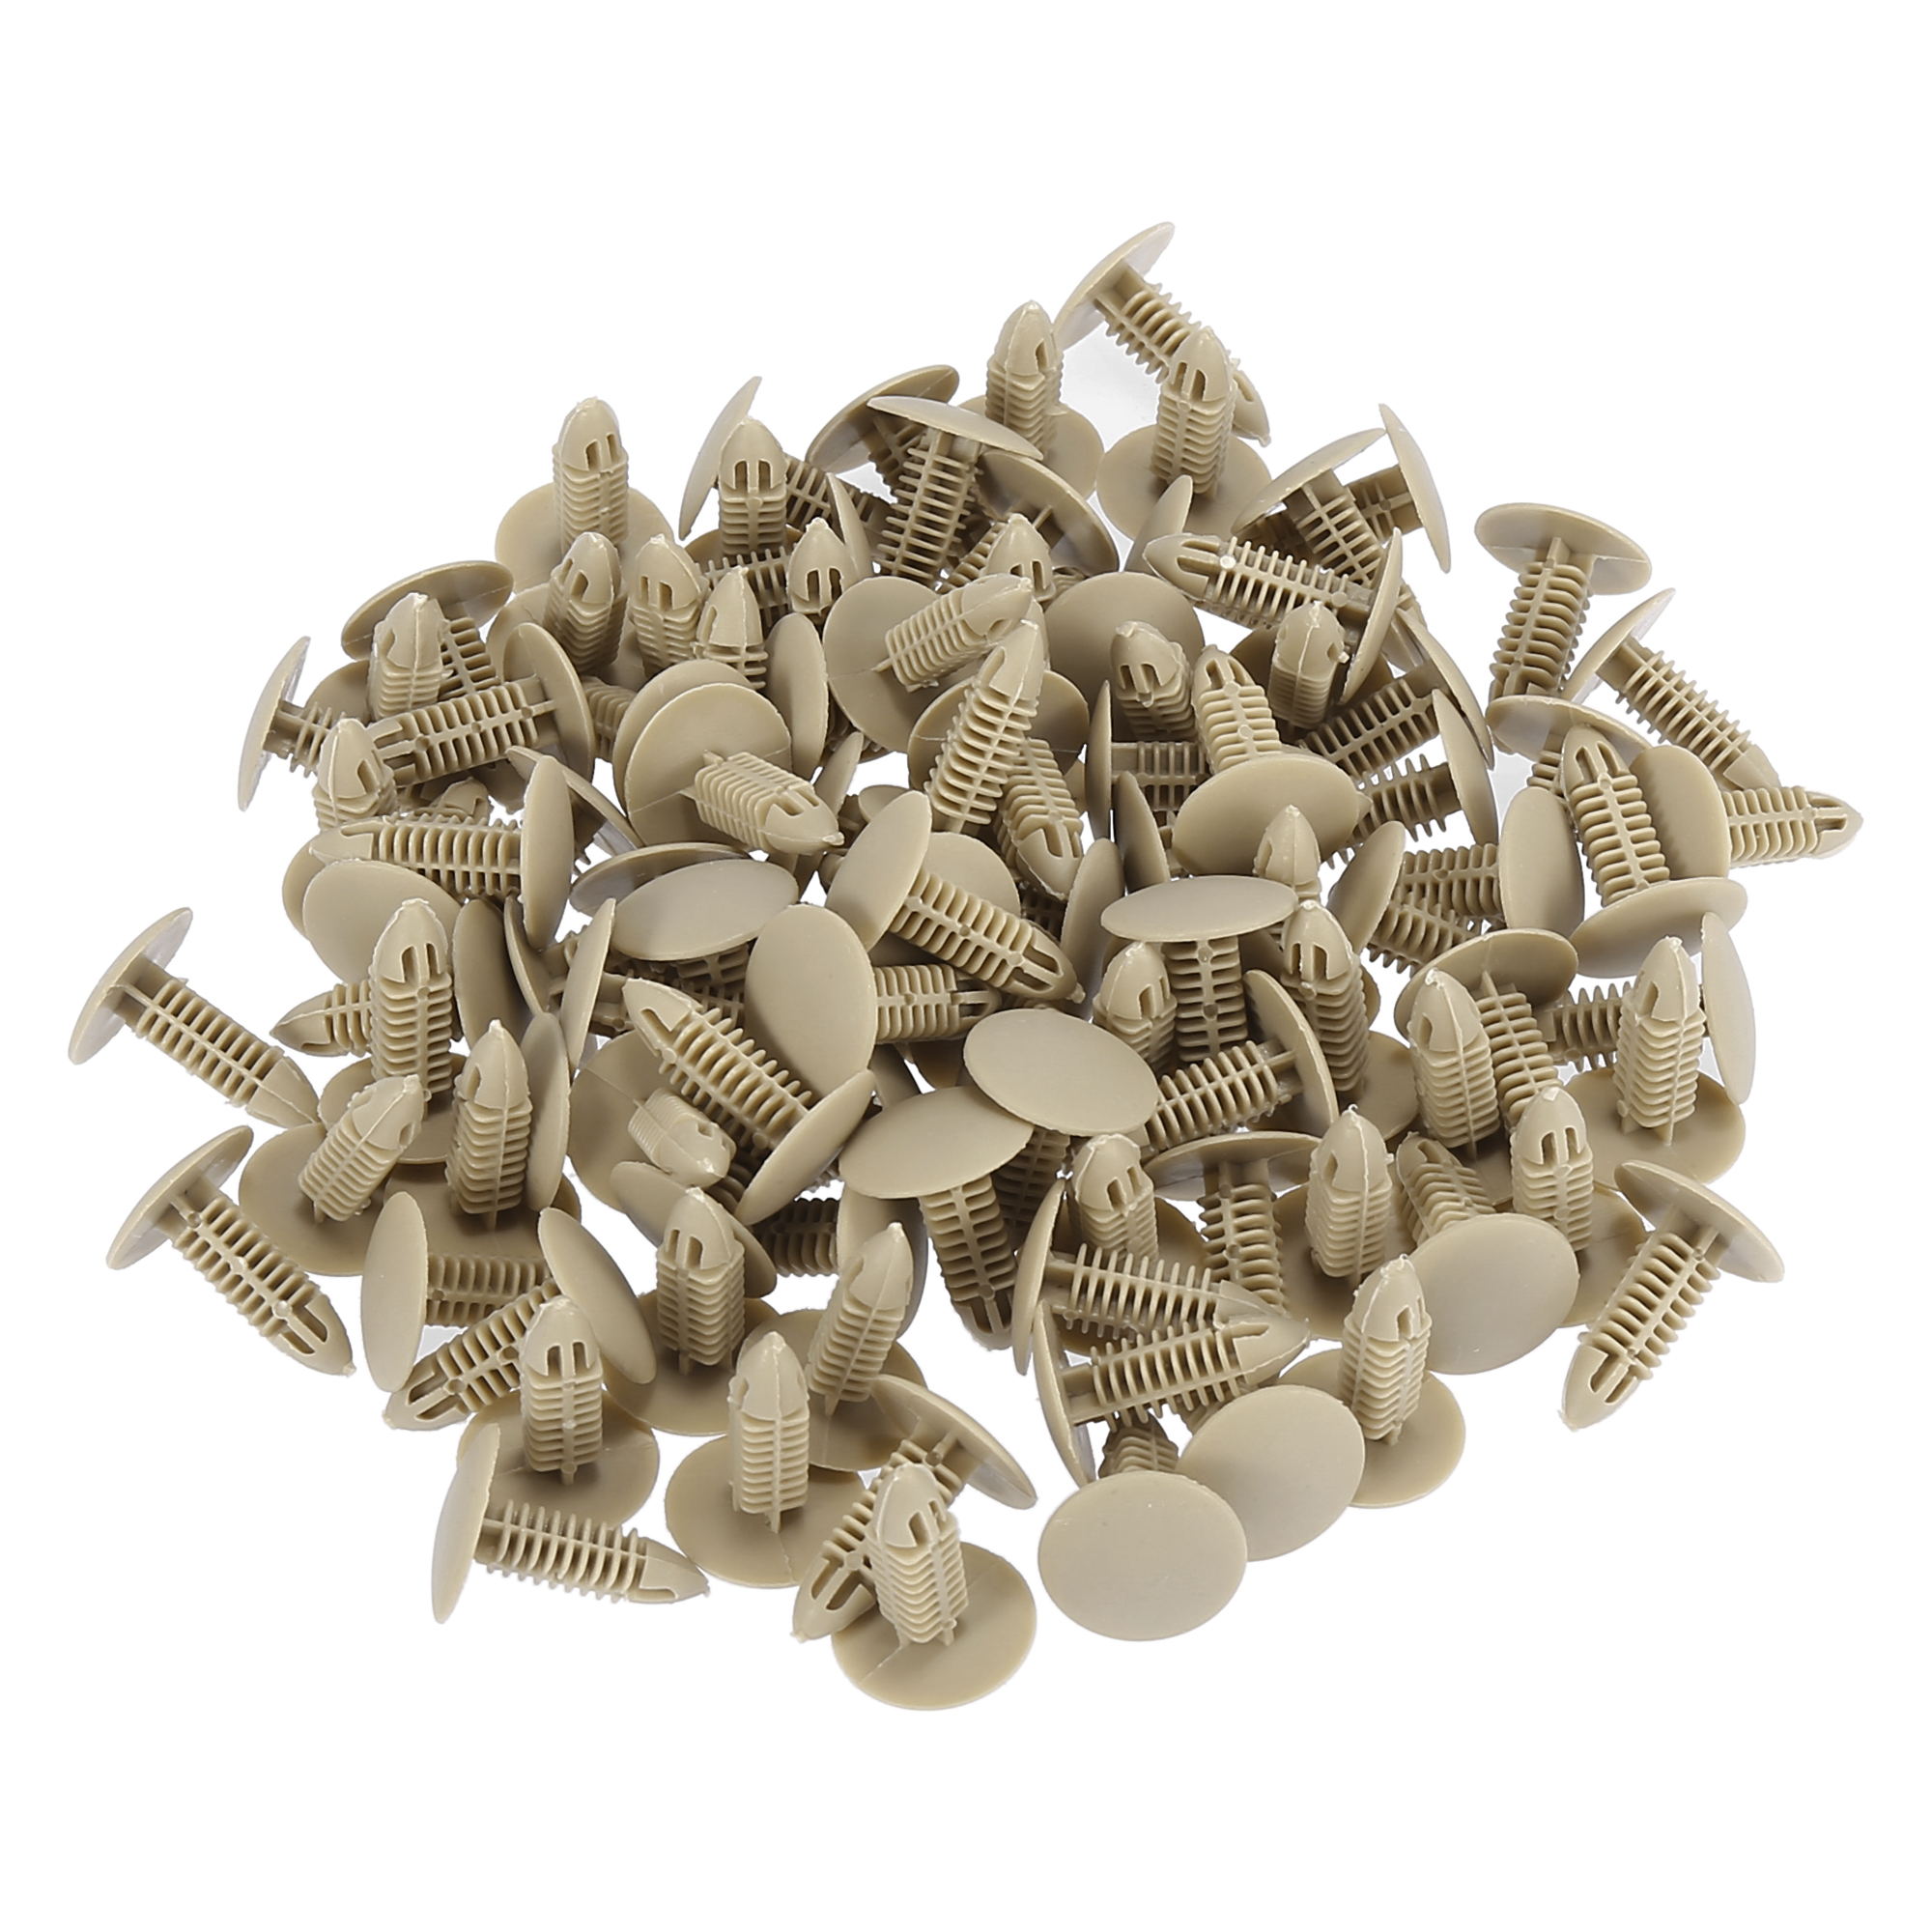 100 x 6mm Hole Plastic Rivets Fastener Push Clips Khaki for Car Auto Fender